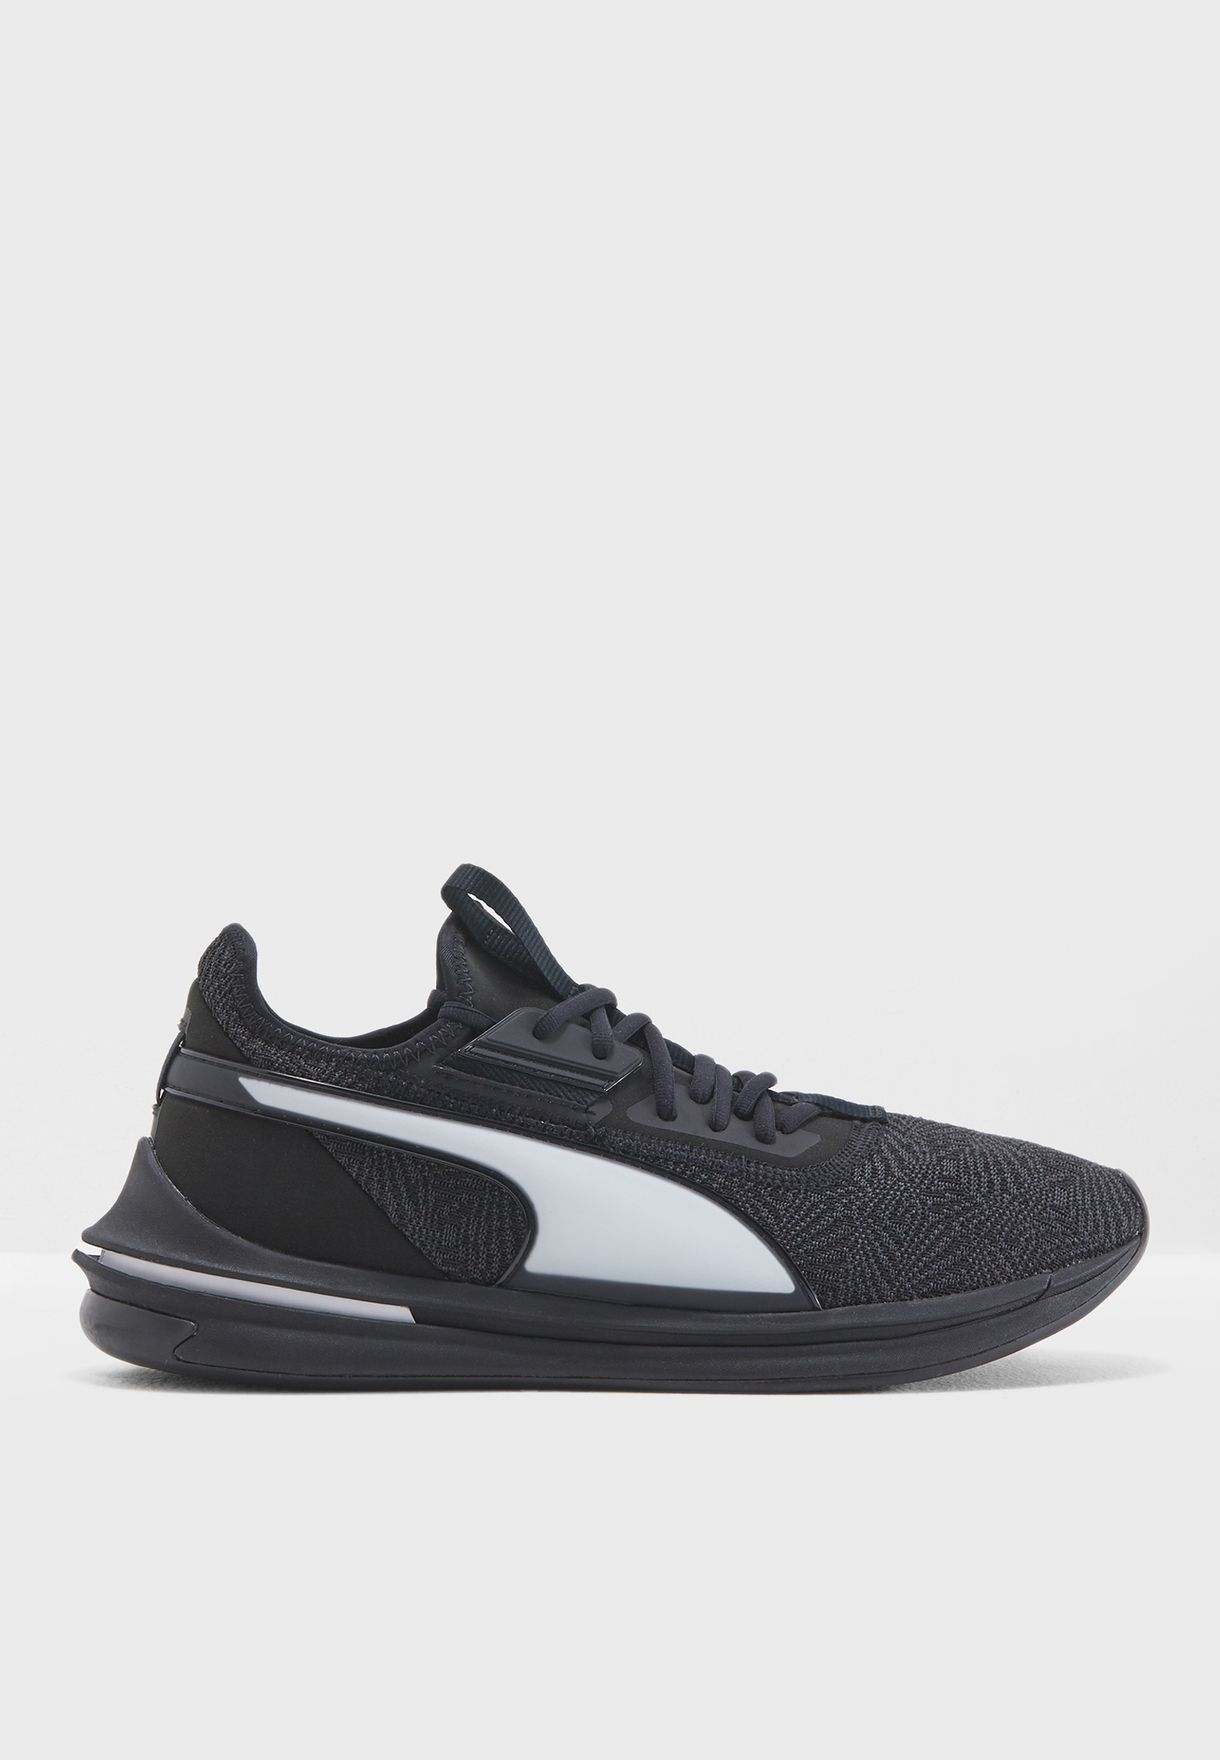 4478f7733f44 Shop PUMA black Ignite Limitless SR-71 19113201 for Men in UAE ...